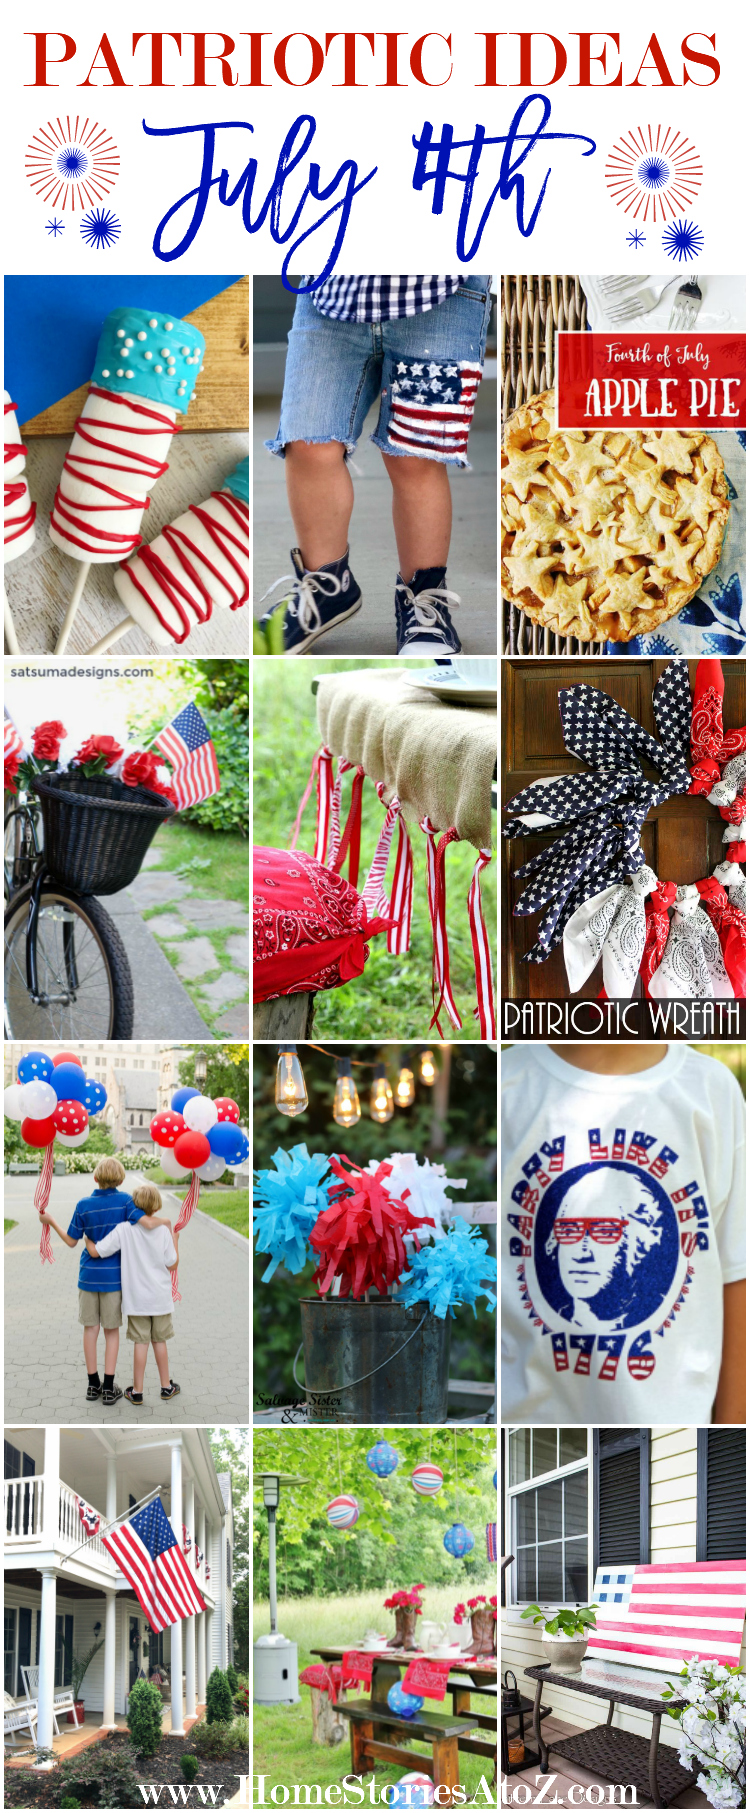 24-Patriotic-Ideas-for-July-4th-